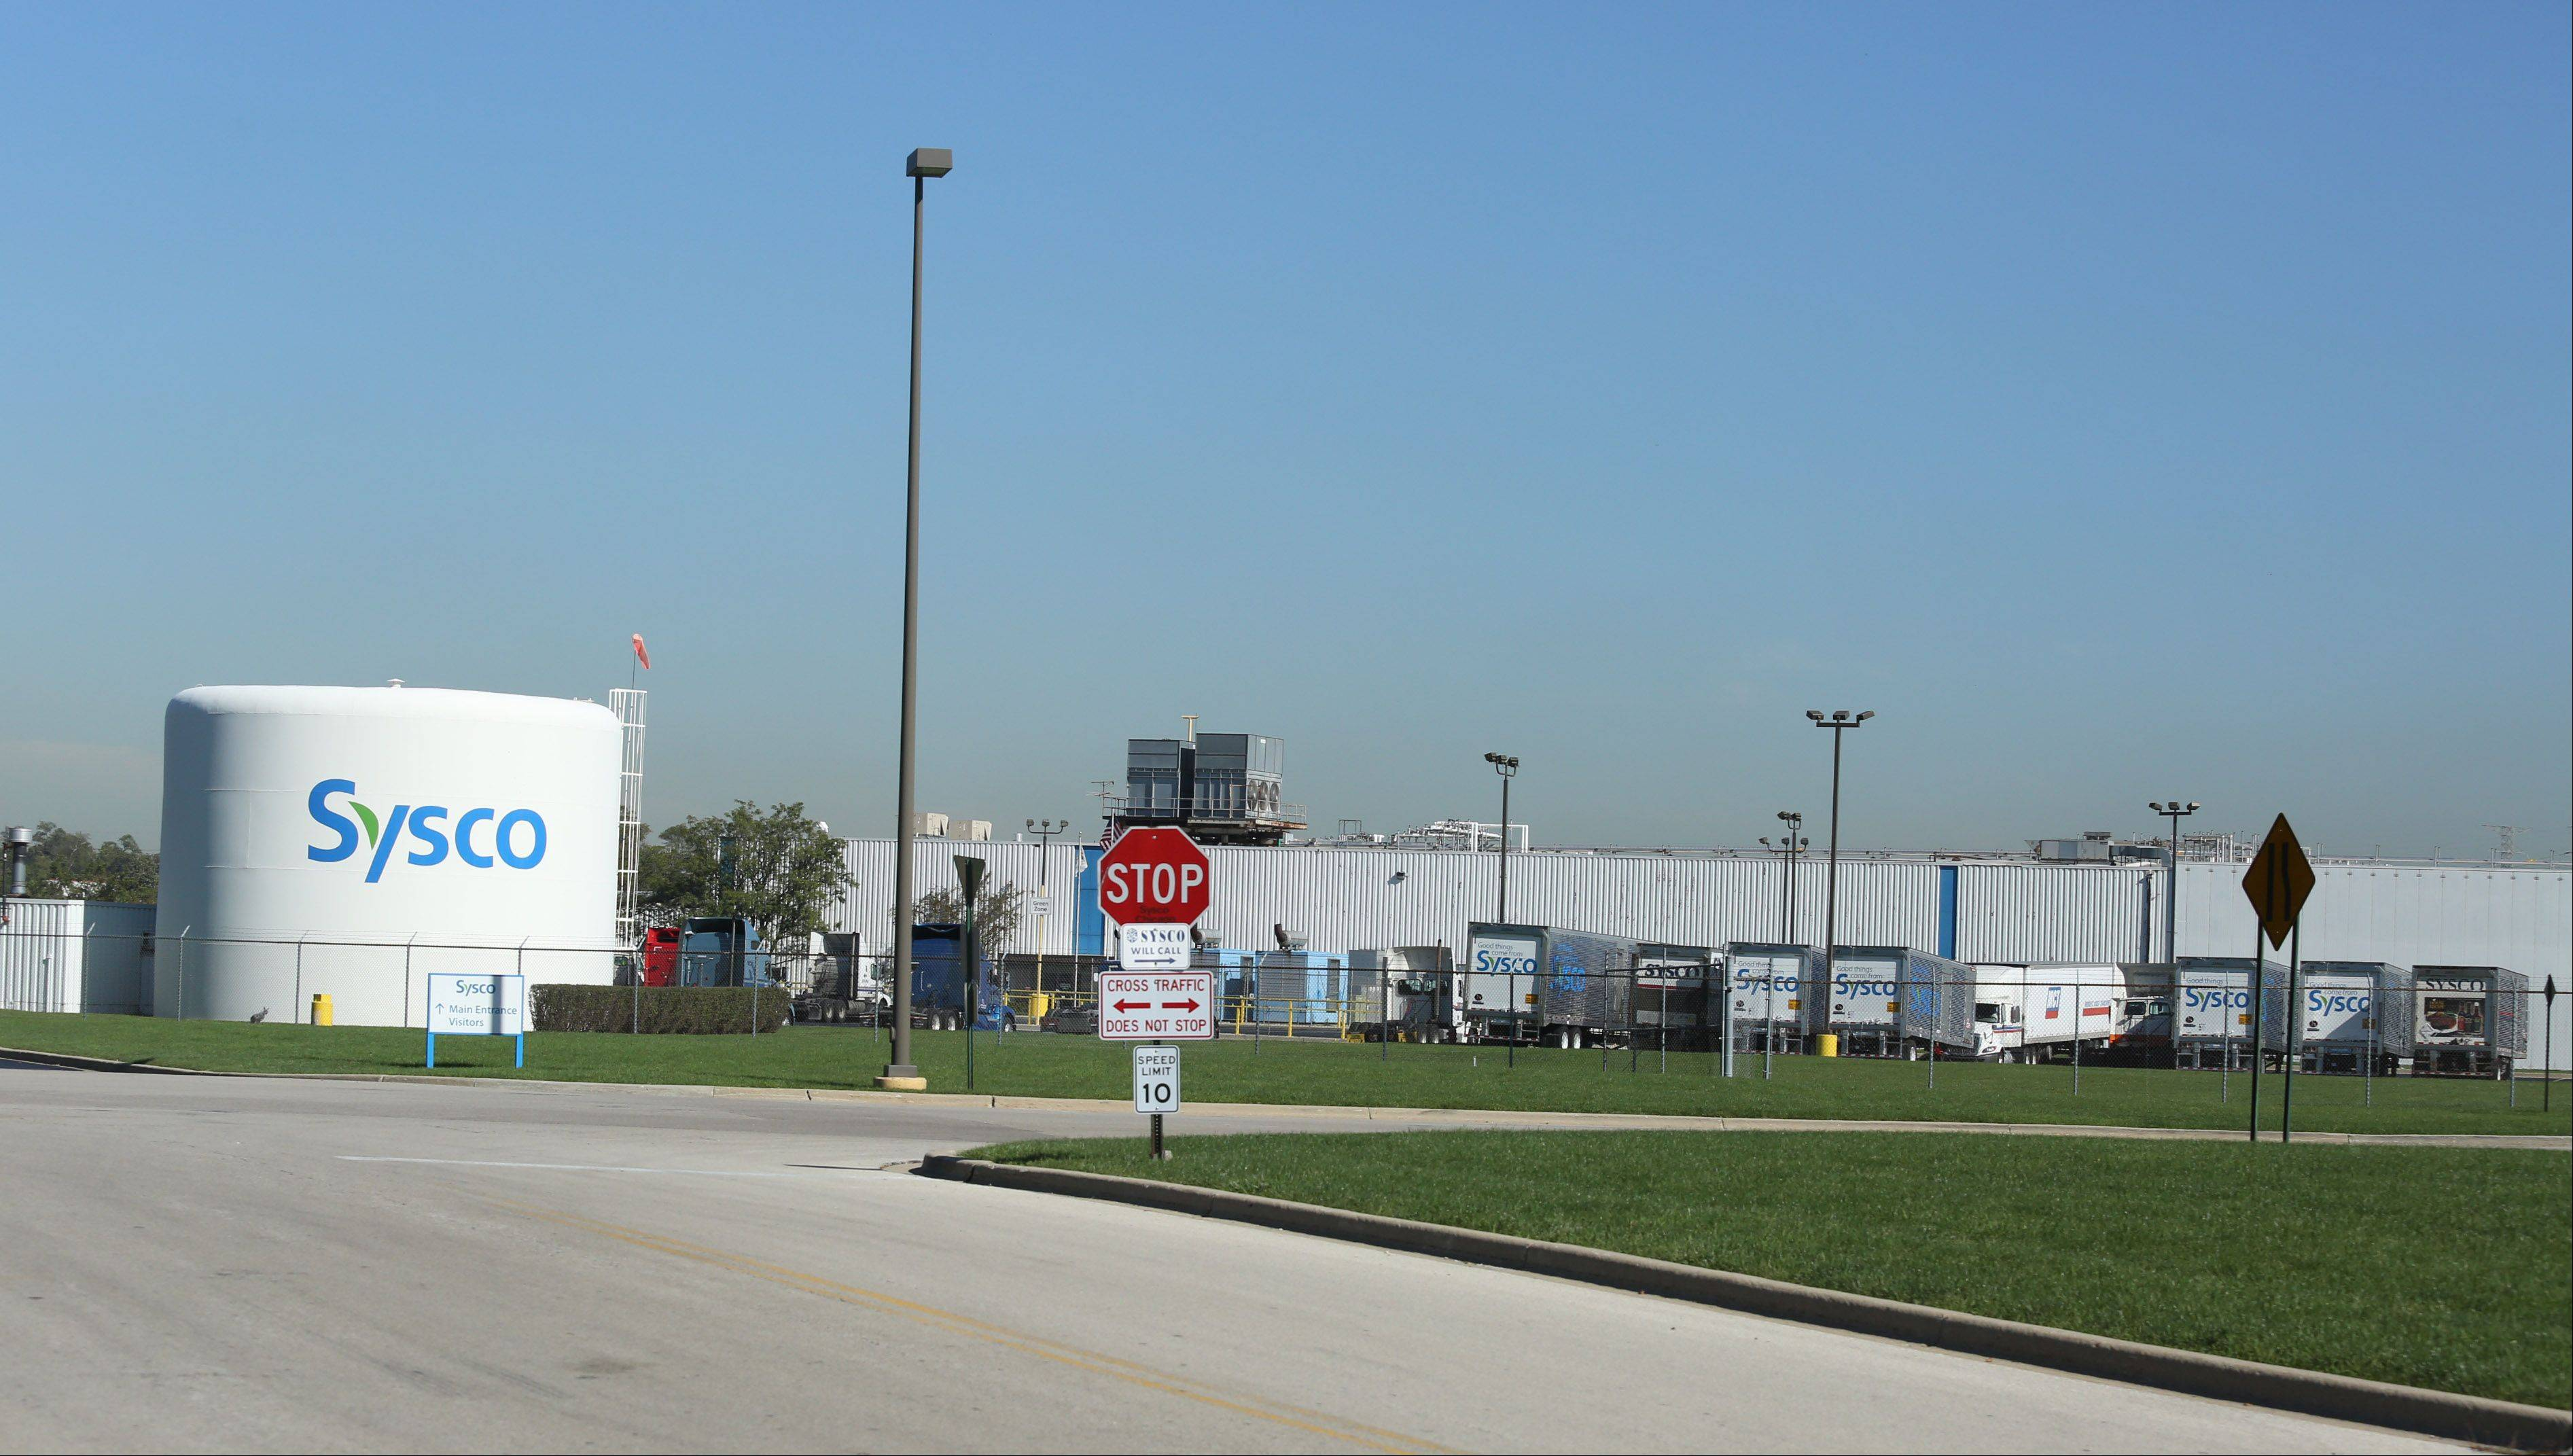 Sysco has local facilities in Des Plaines.